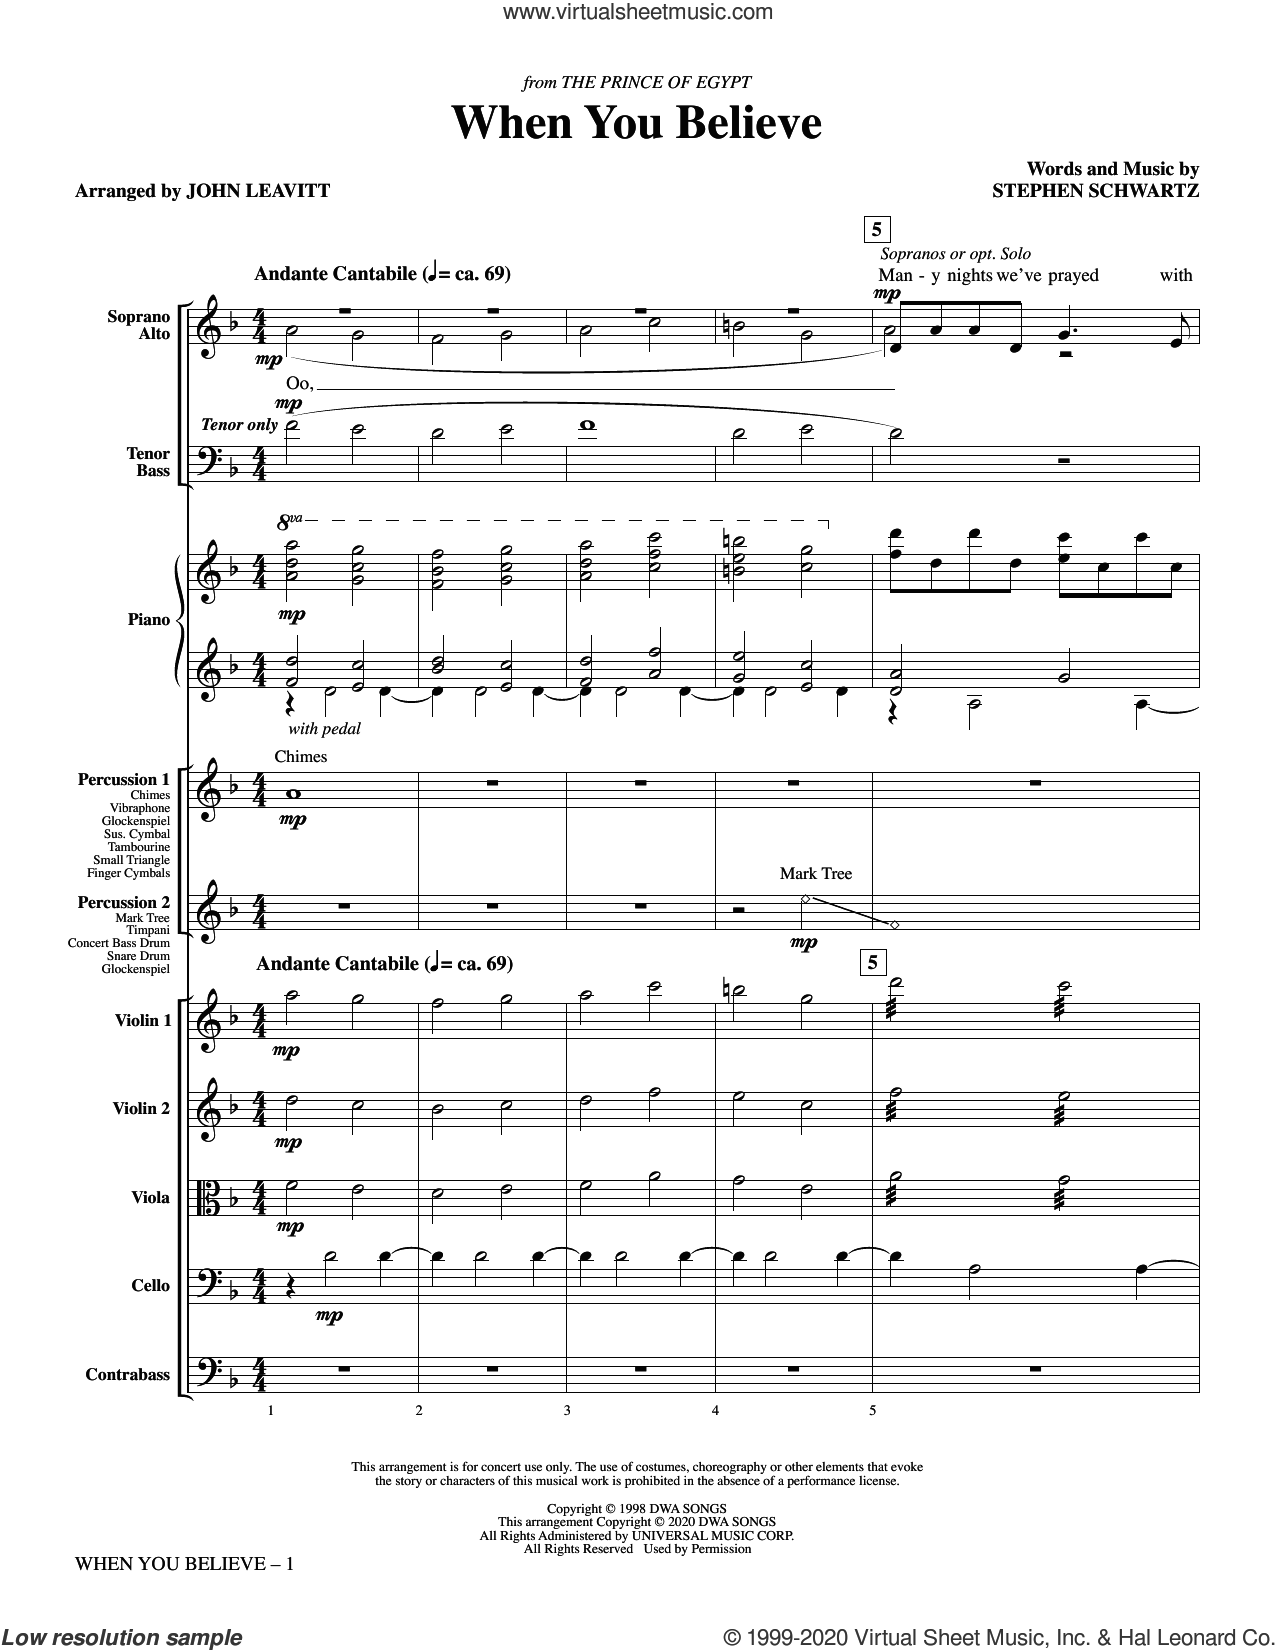 When You Believe (from The Prince Of Egypt) (arr. John Leavitt) (COMPLETE) sheet music for orchestra/band by Stephen Schwartz, John Leavitt and Whitney Houston and Mariah Carey, intermediate skill level